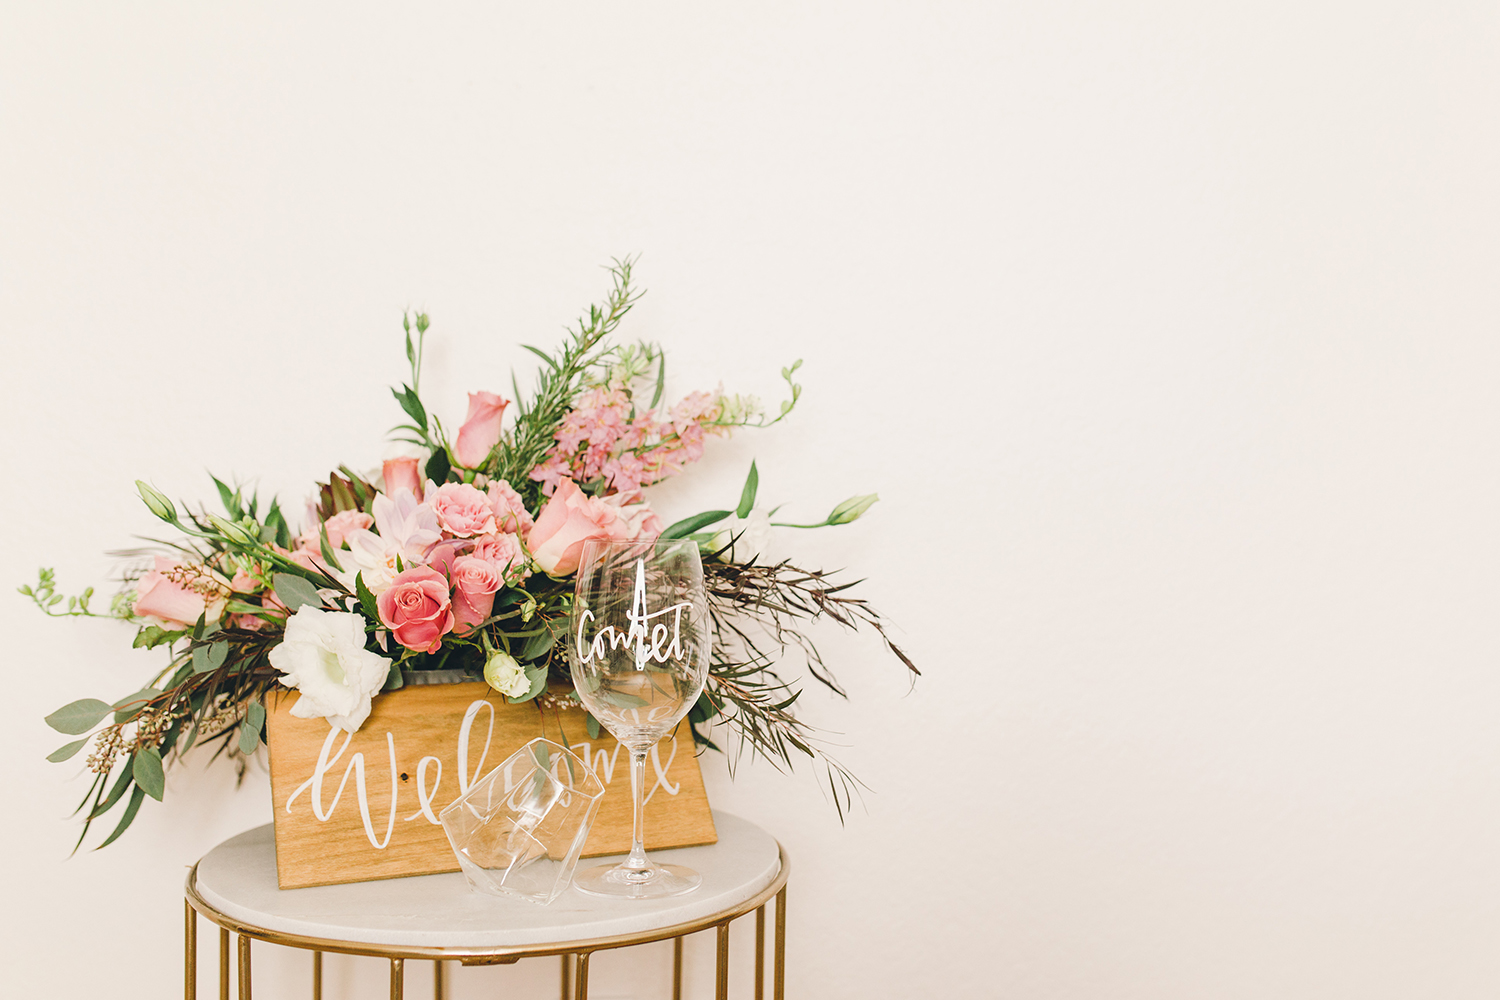 Create a welcome area at your holiday party | A Fabulous Fete